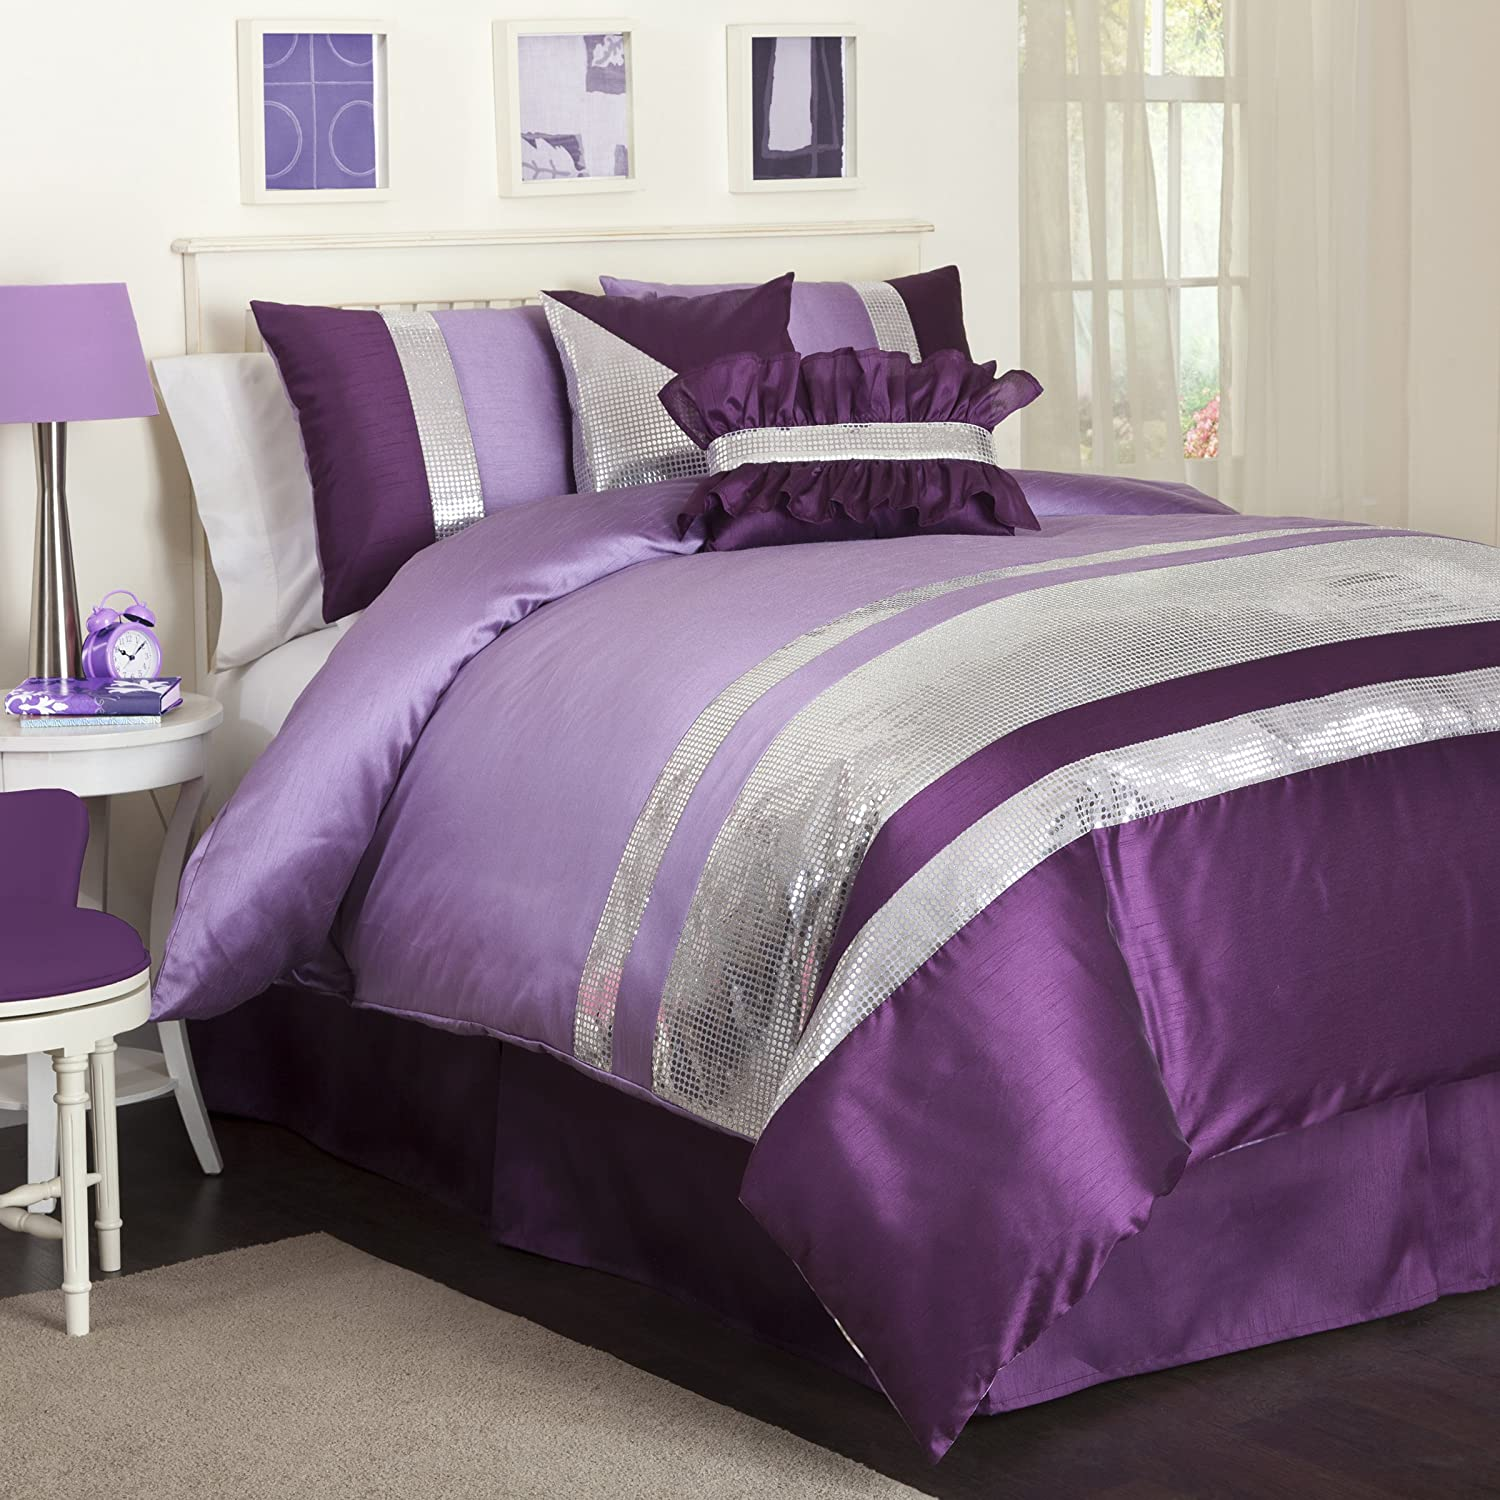 Lush decor jewel 5 piece comforter set twin purple